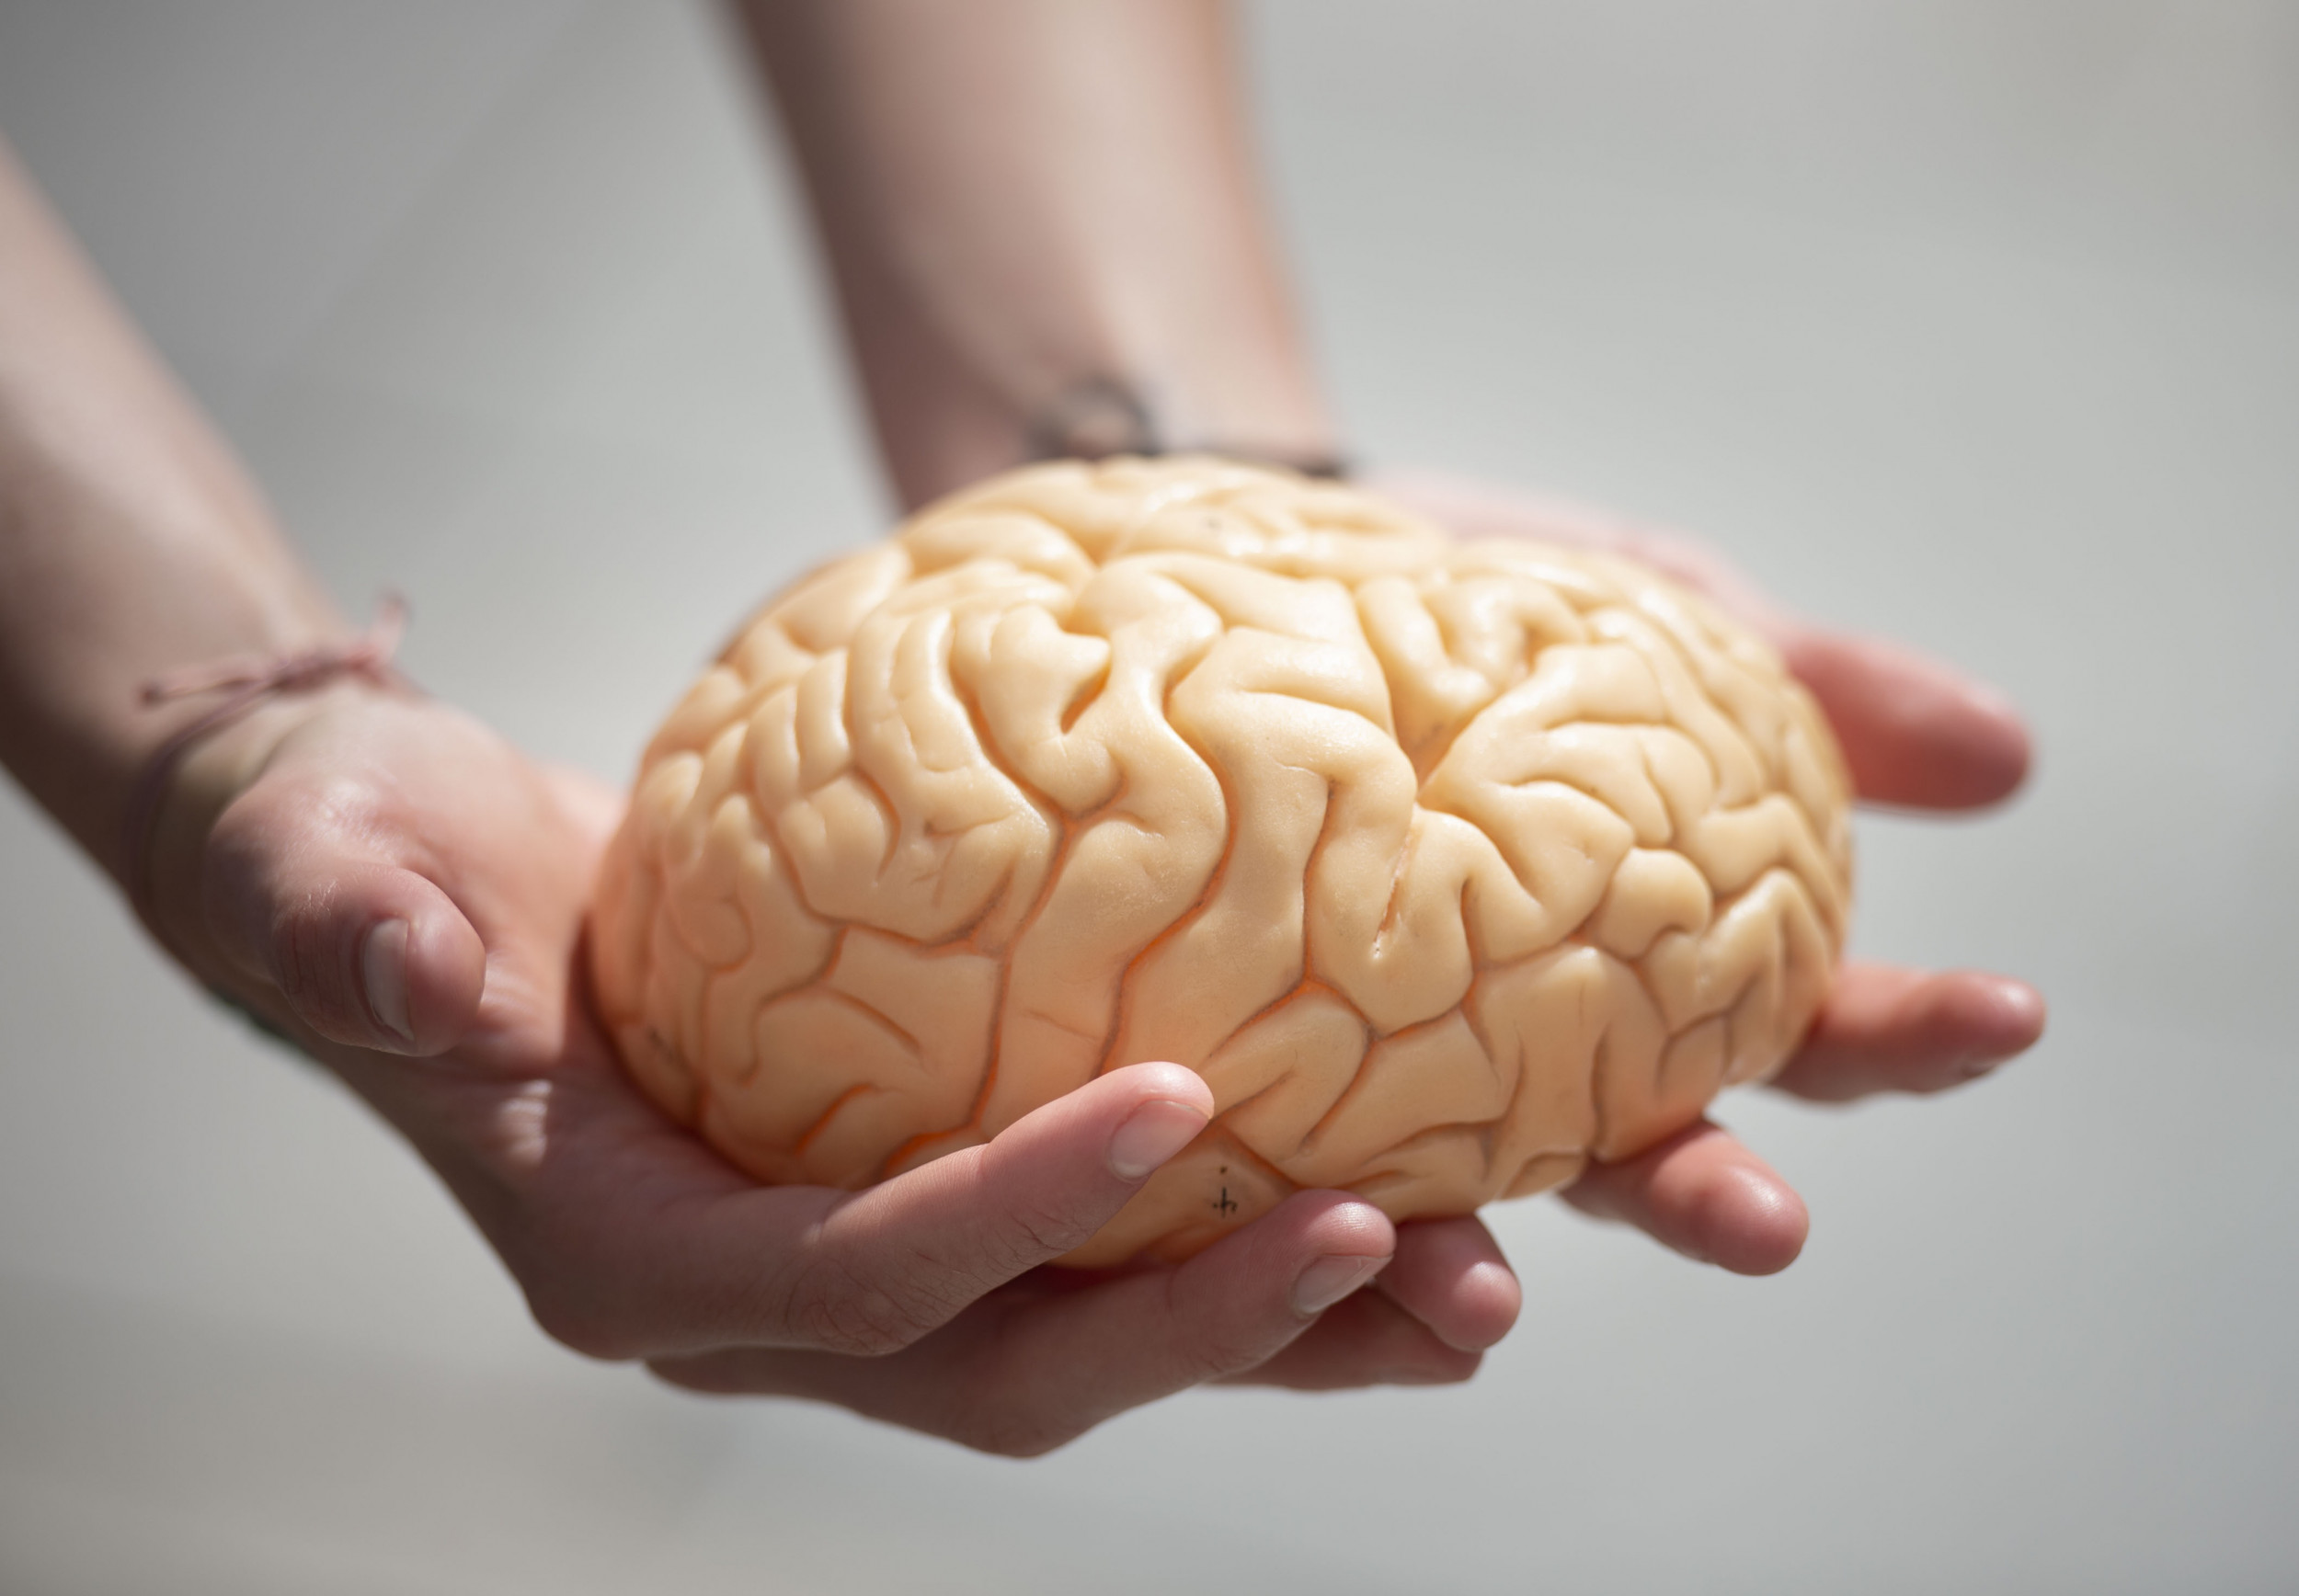 Man Finds Suspected Brain Wrapped in Aluminum Foil on Wisconsin Seaside thumbnail